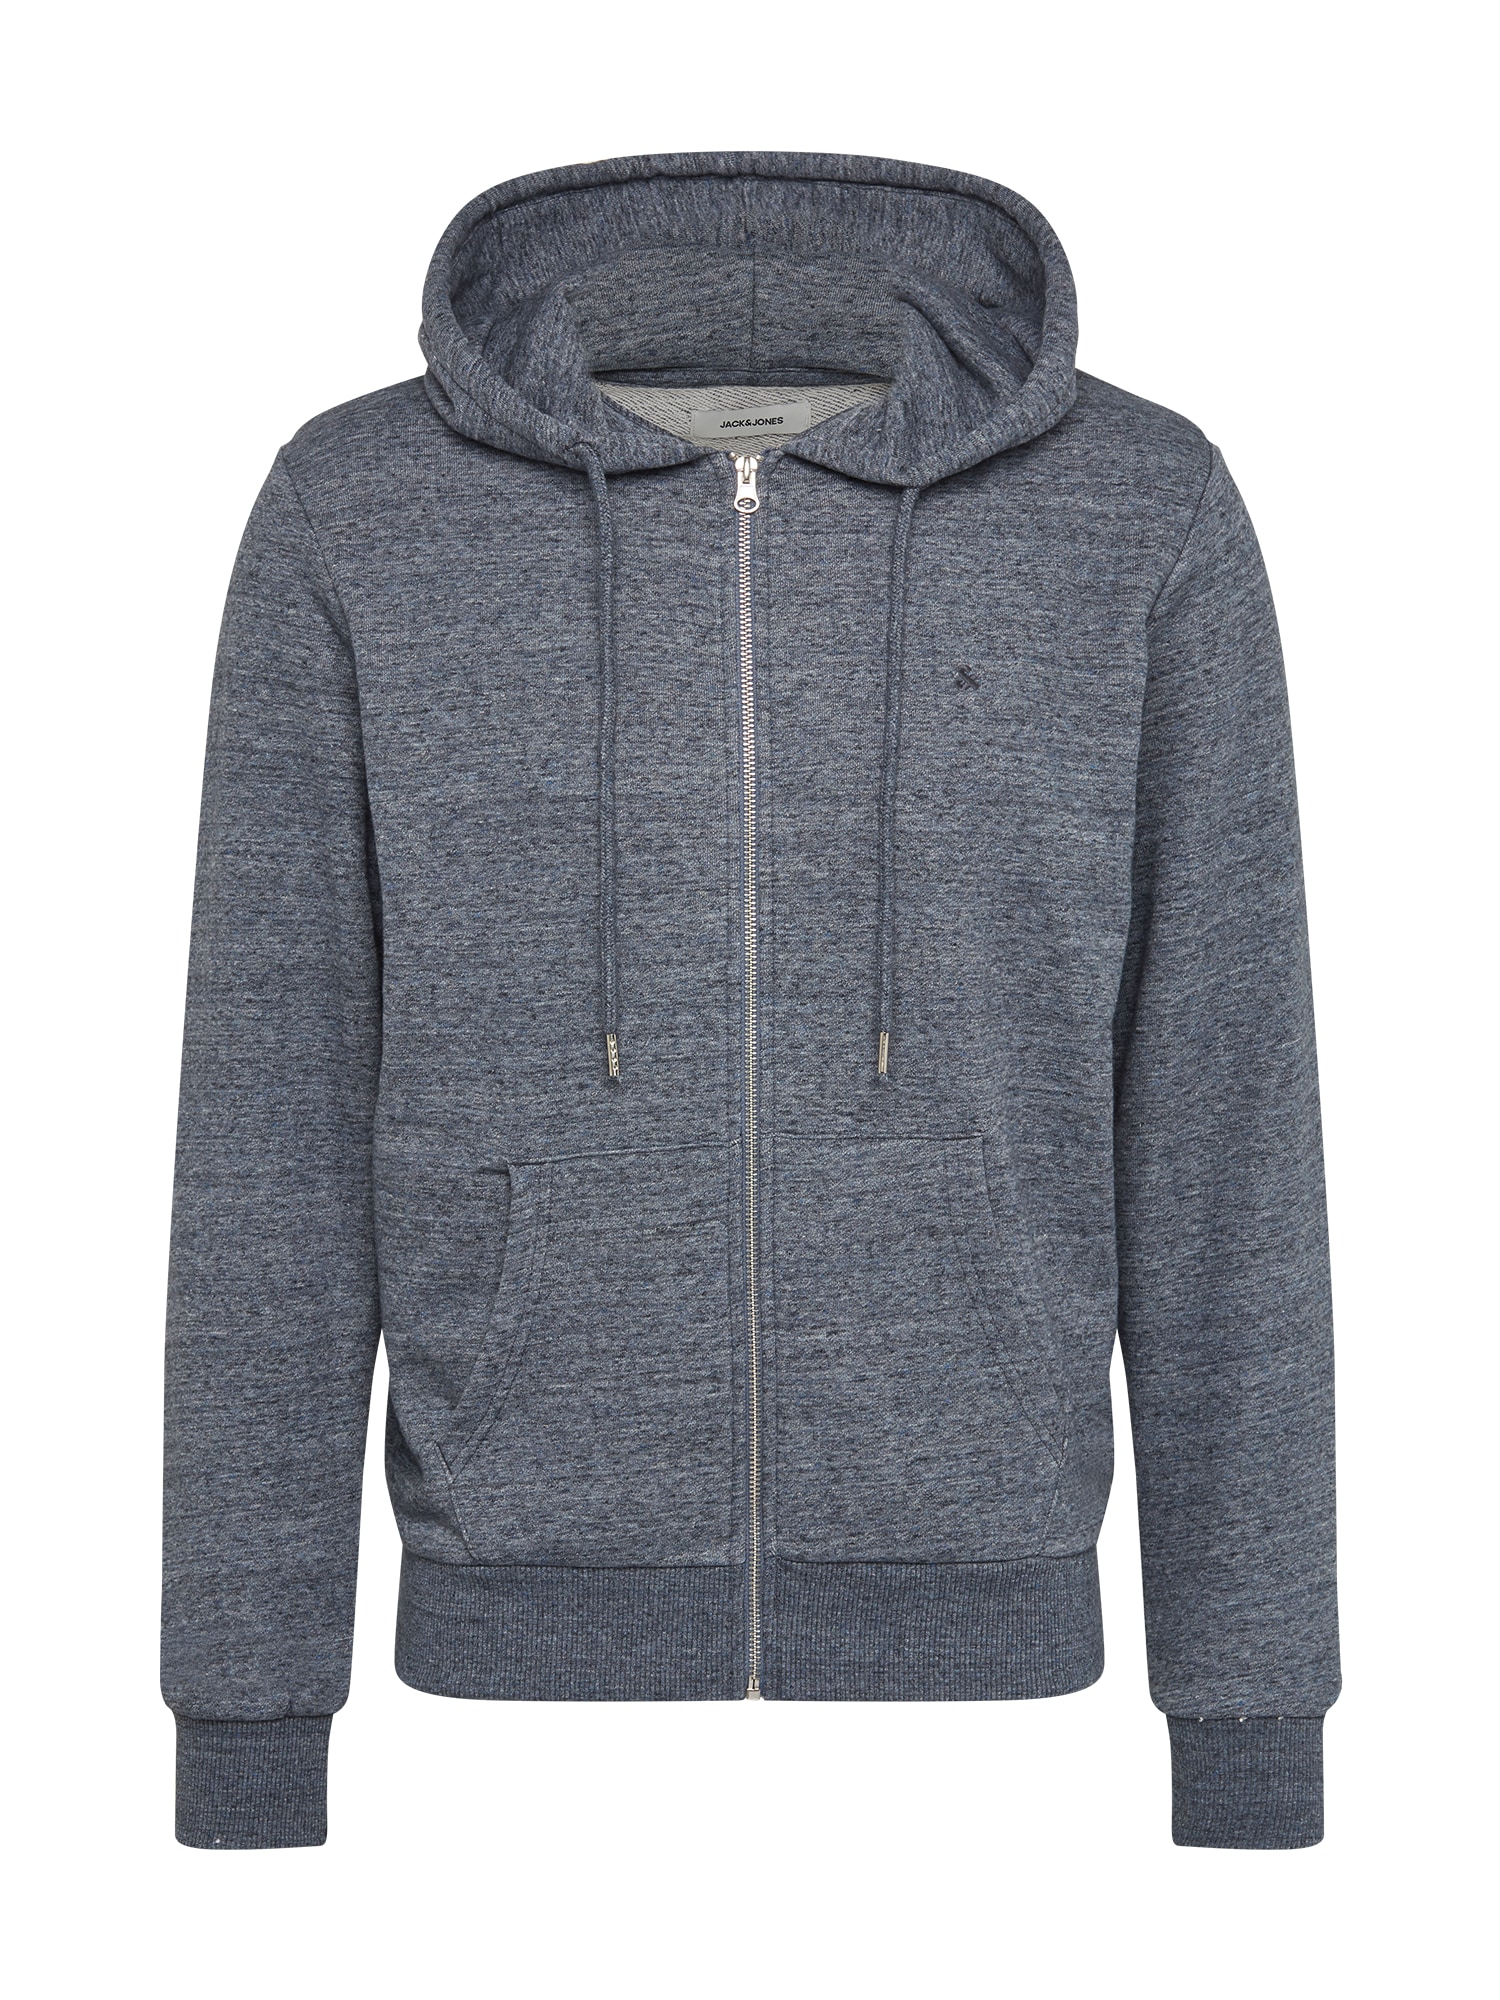 JACK & JONES Džemperis melsvai pilka